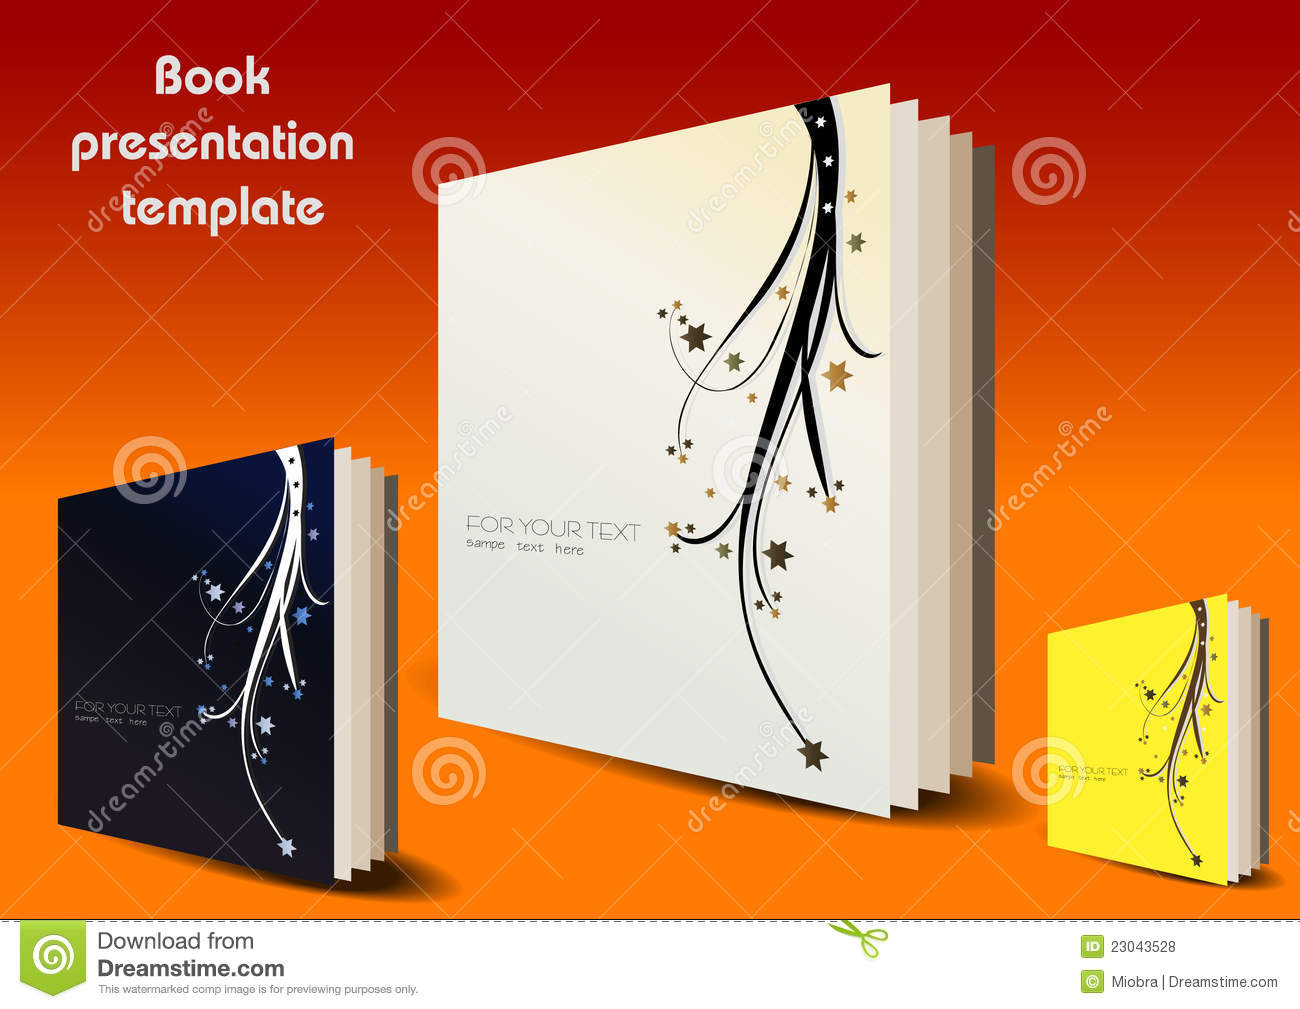 book presentation template stock vector  illustration of